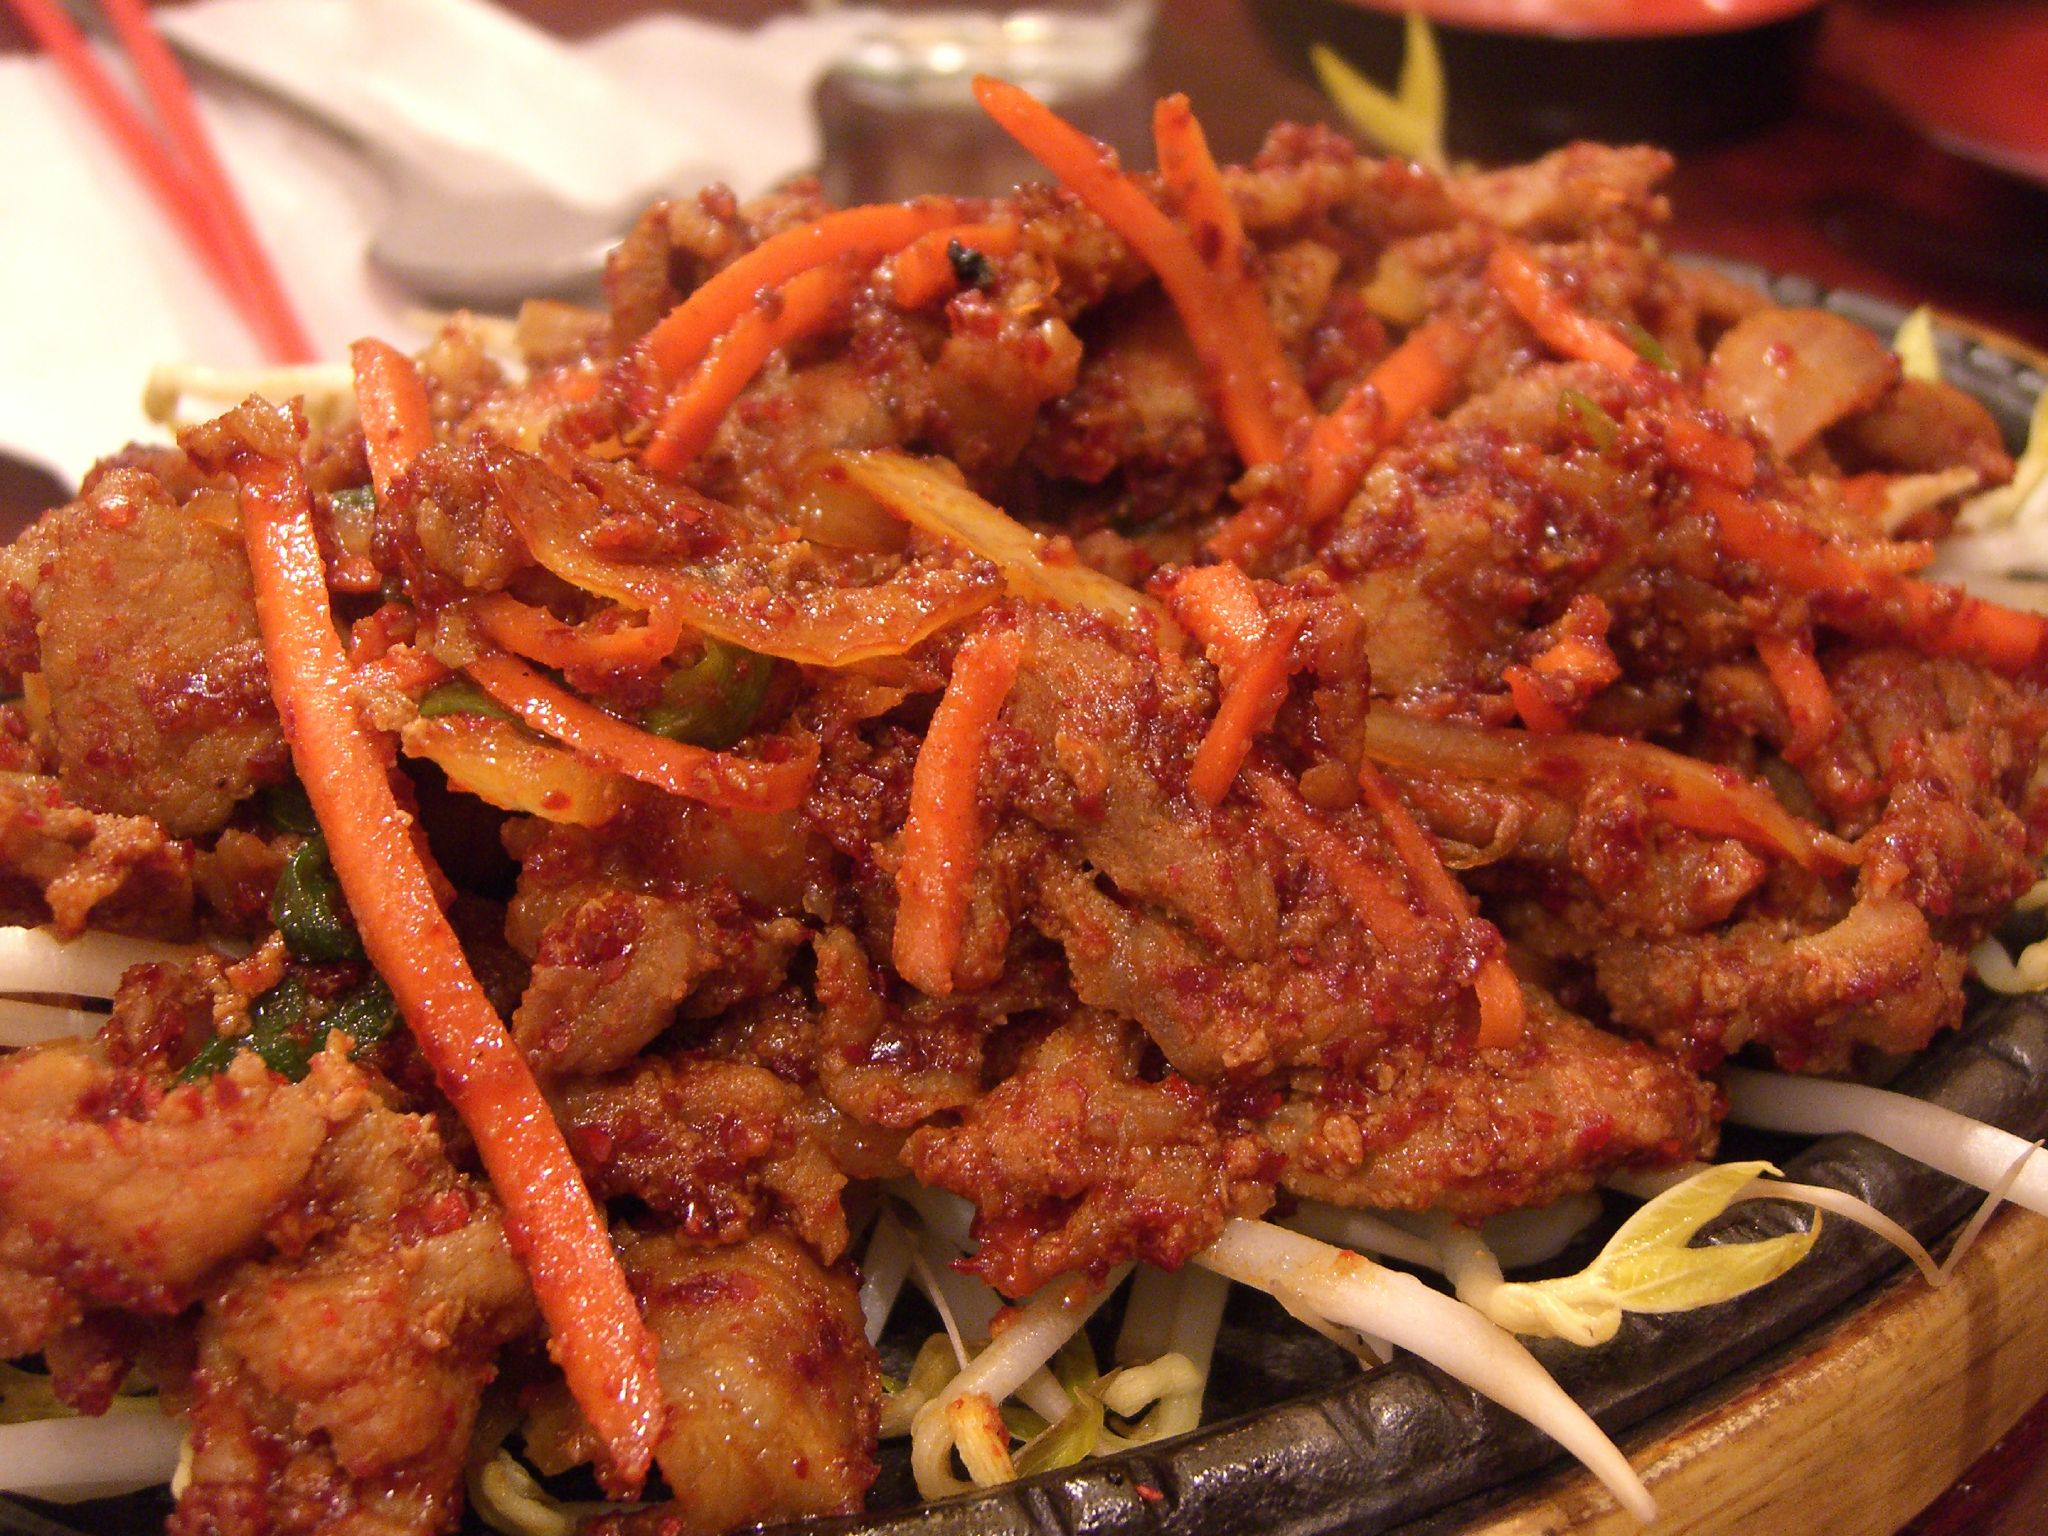 File:Korean.cuisine-Pork.bulgogi-01.jpg